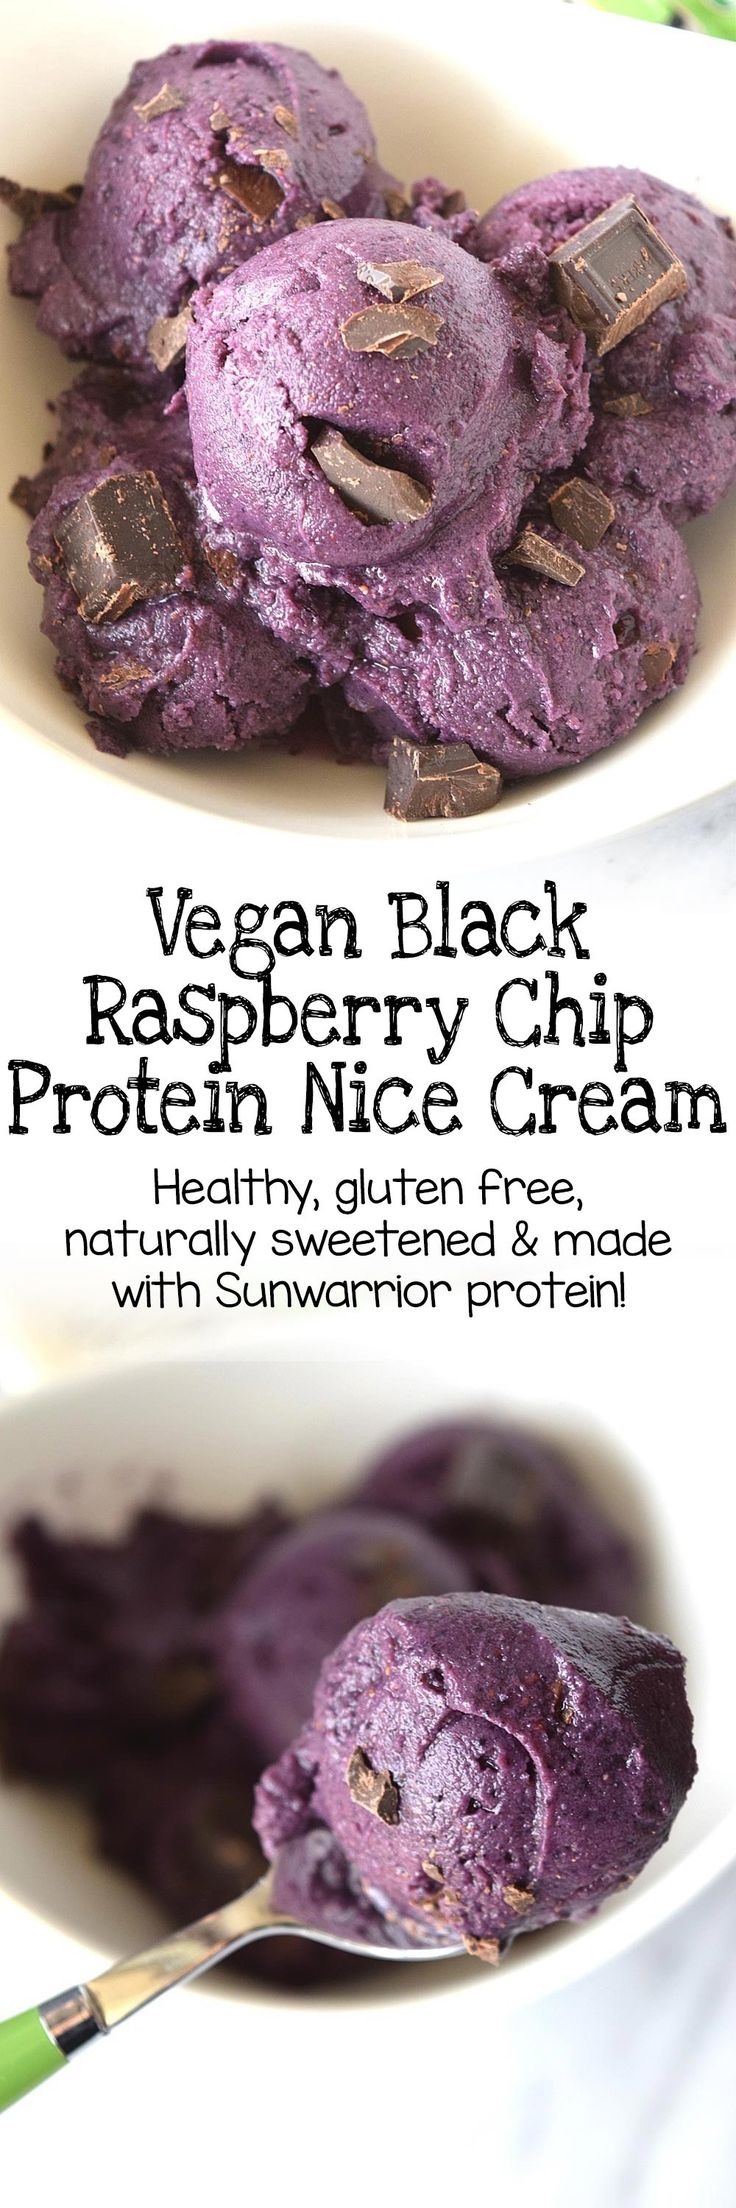 Vegan black raspberry chip protein nice cream is smooth, creamy, full of chocolate chunks and Sunwarrior protein! This would be a great smoothie recipe for breakfast, or an easy, healthy dessert with only natural sugar!